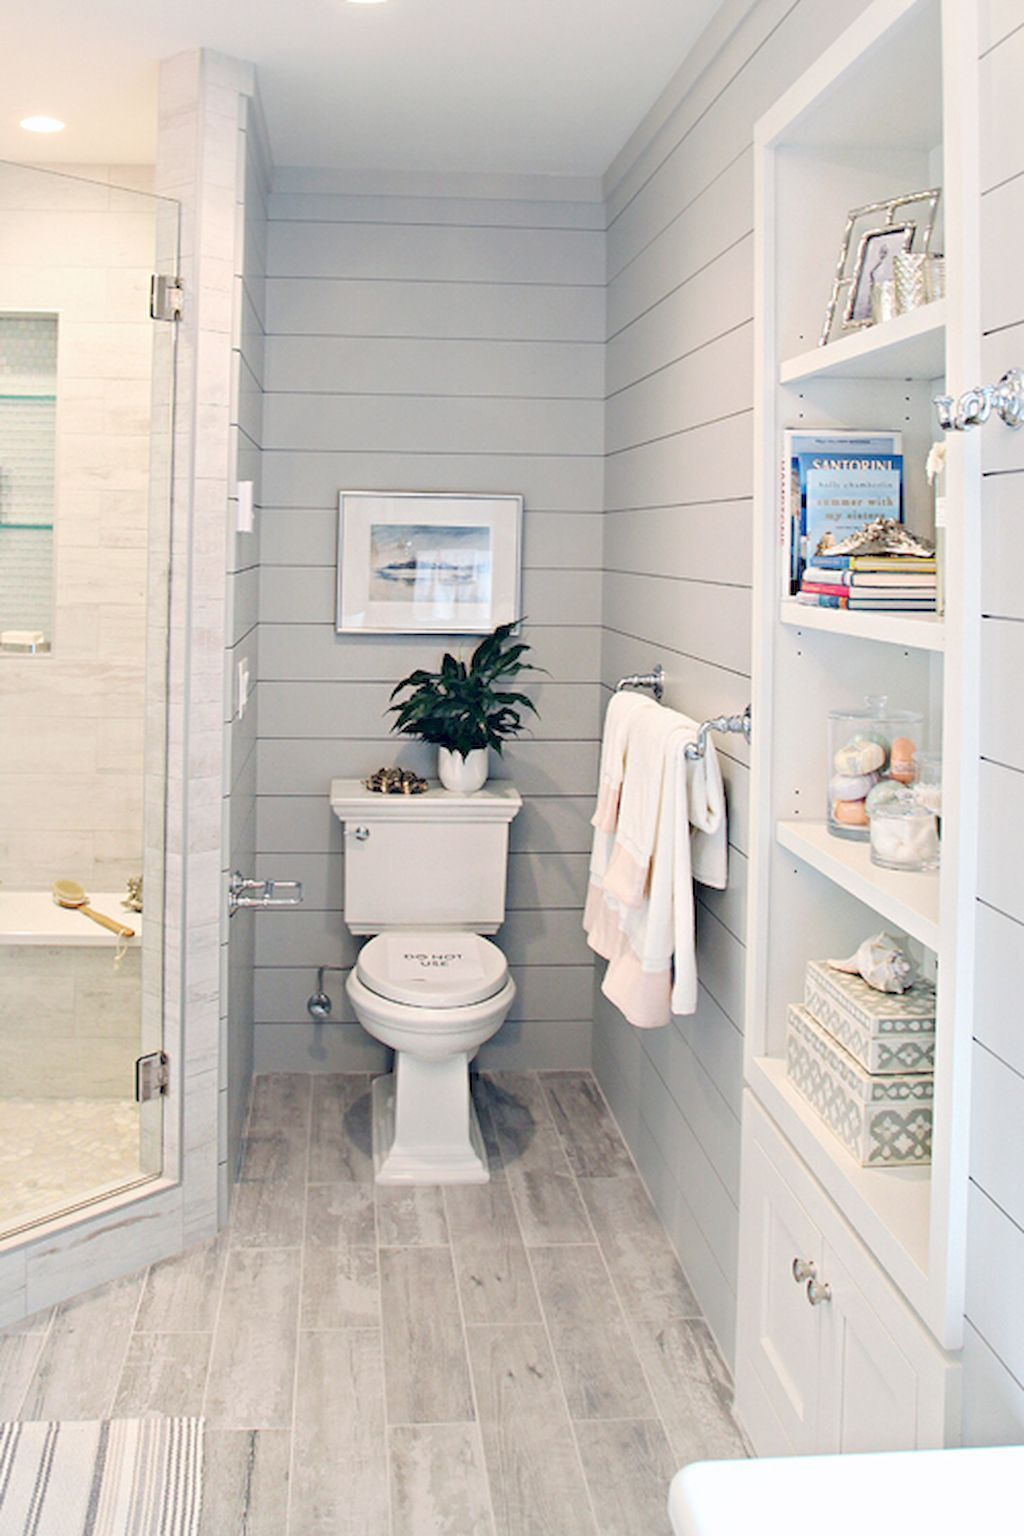 50 best small bathroom remodel ideas on a budget design bathroom rh pinterest com